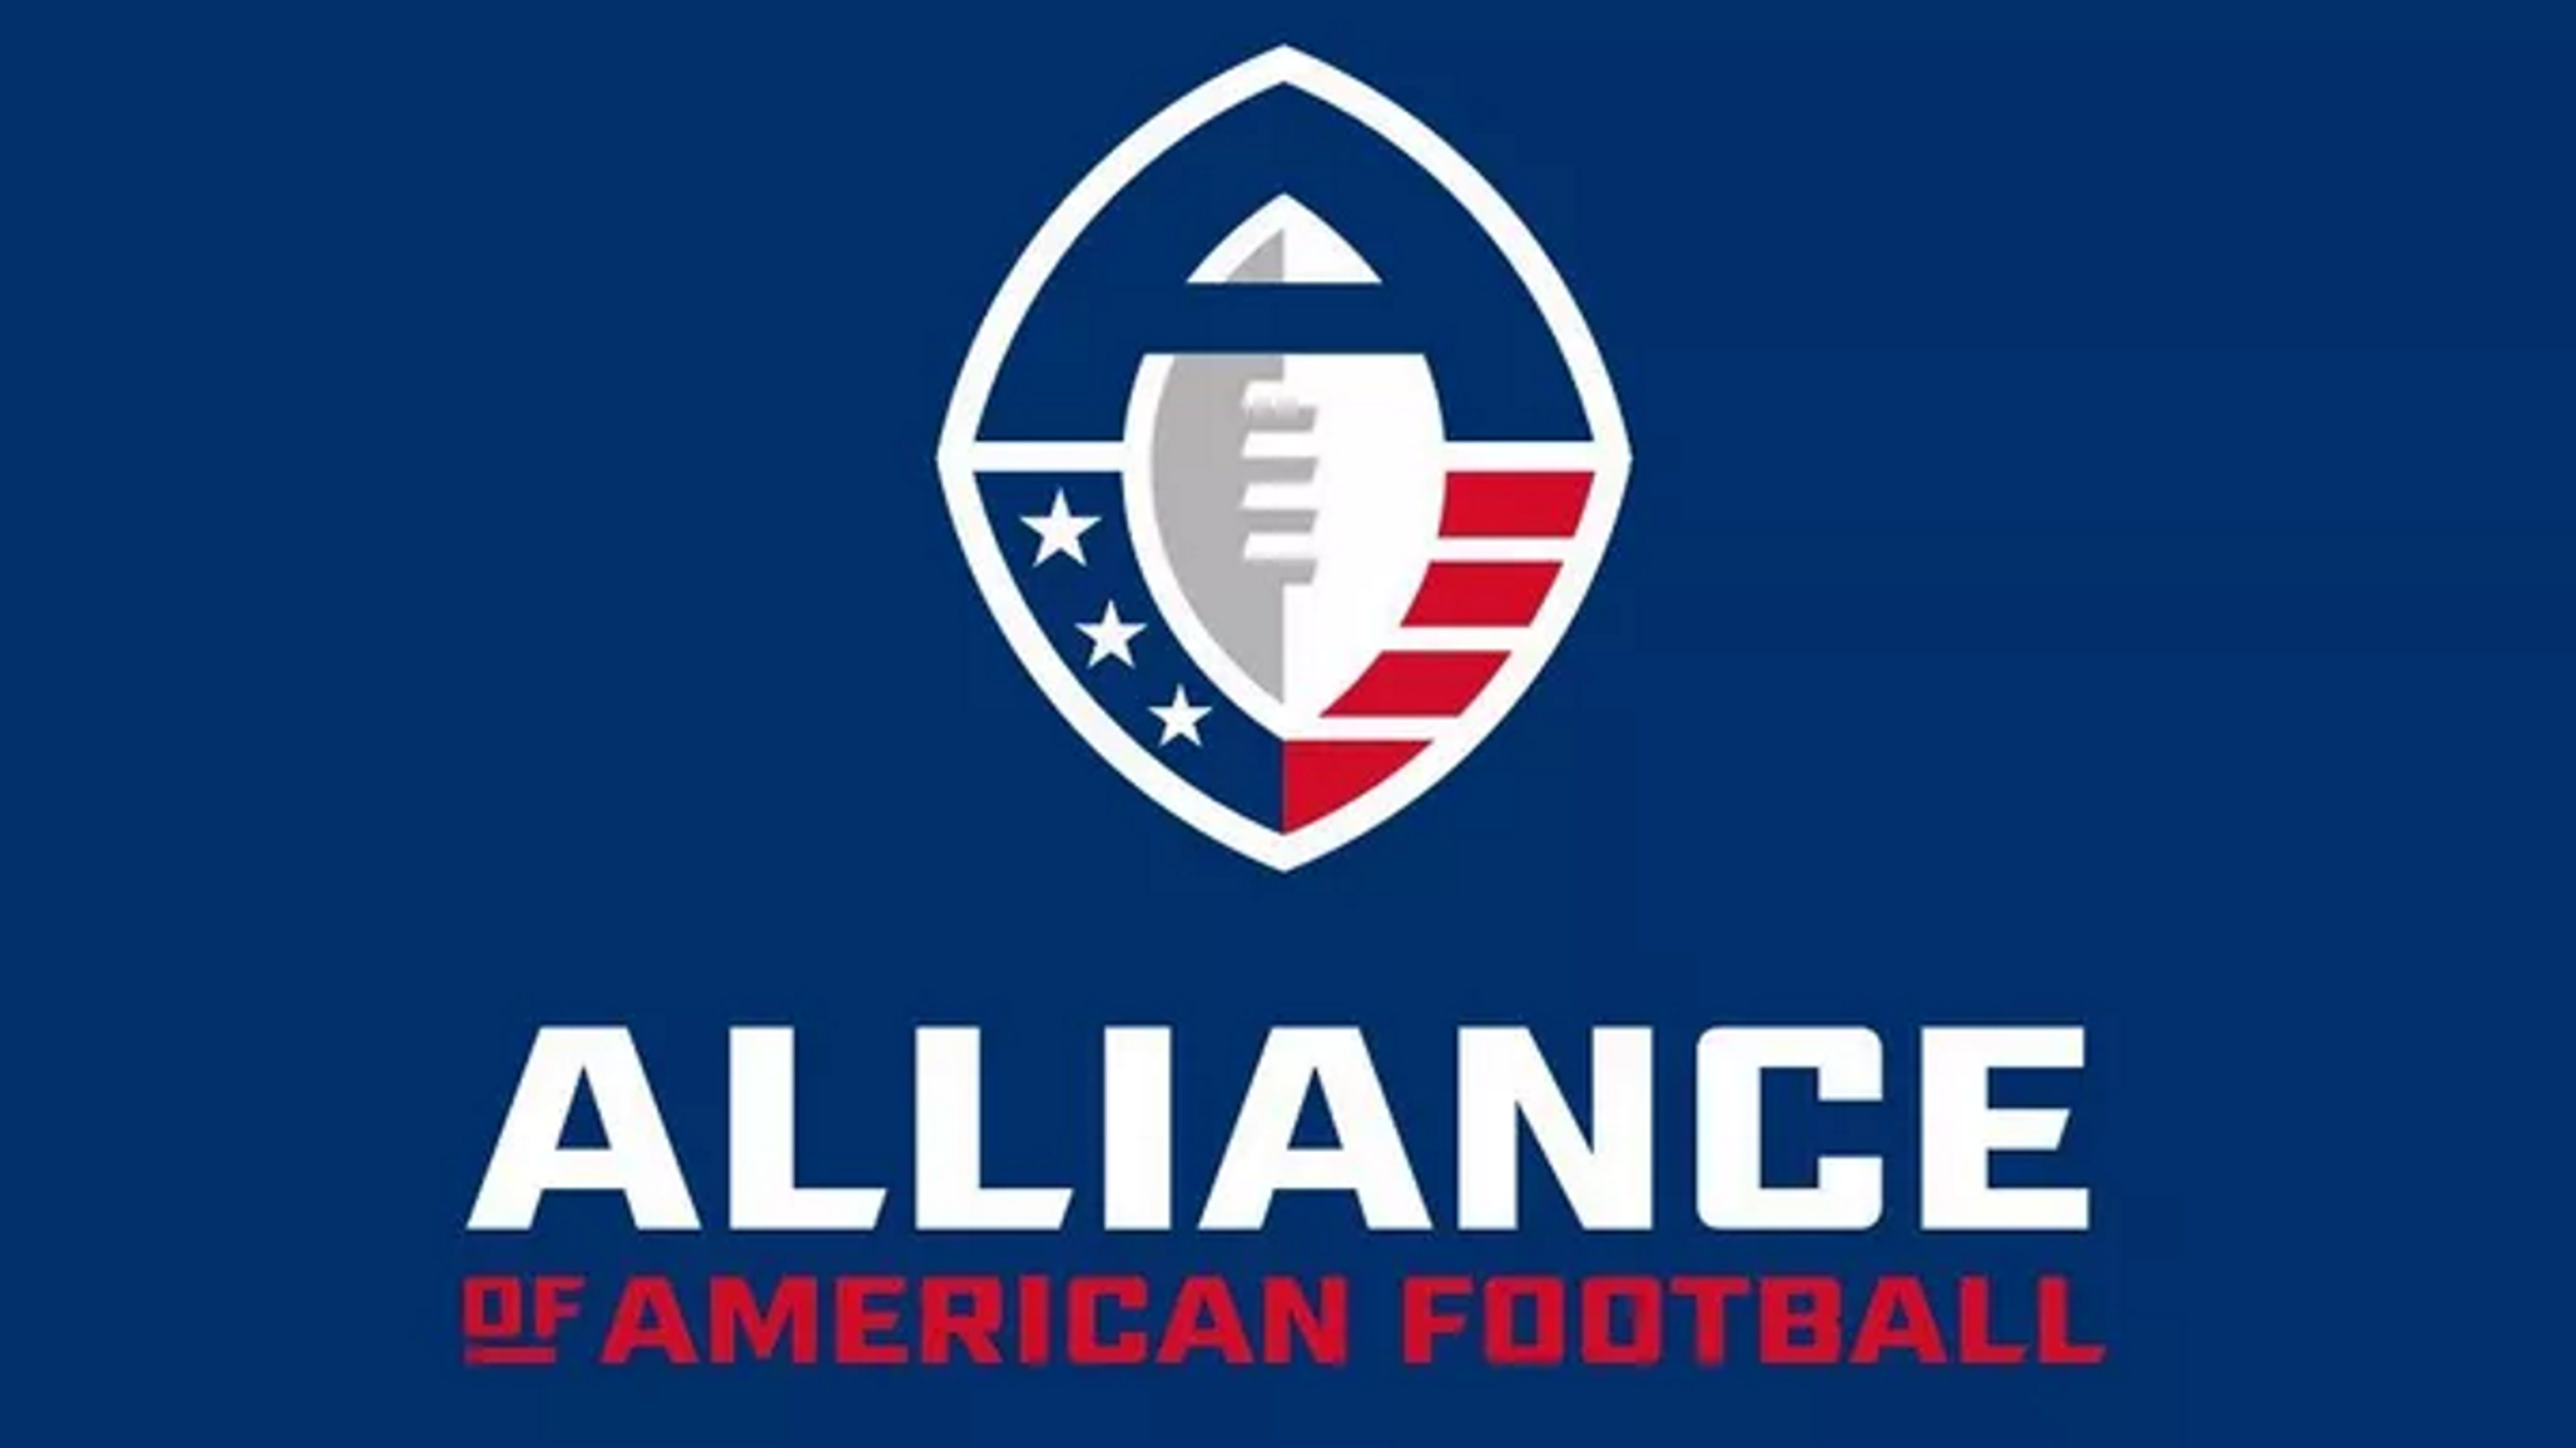 aaf schedule alliance of american football teams how to watch on tv. Black Bedroom Furniture Sets. Home Design Ideas